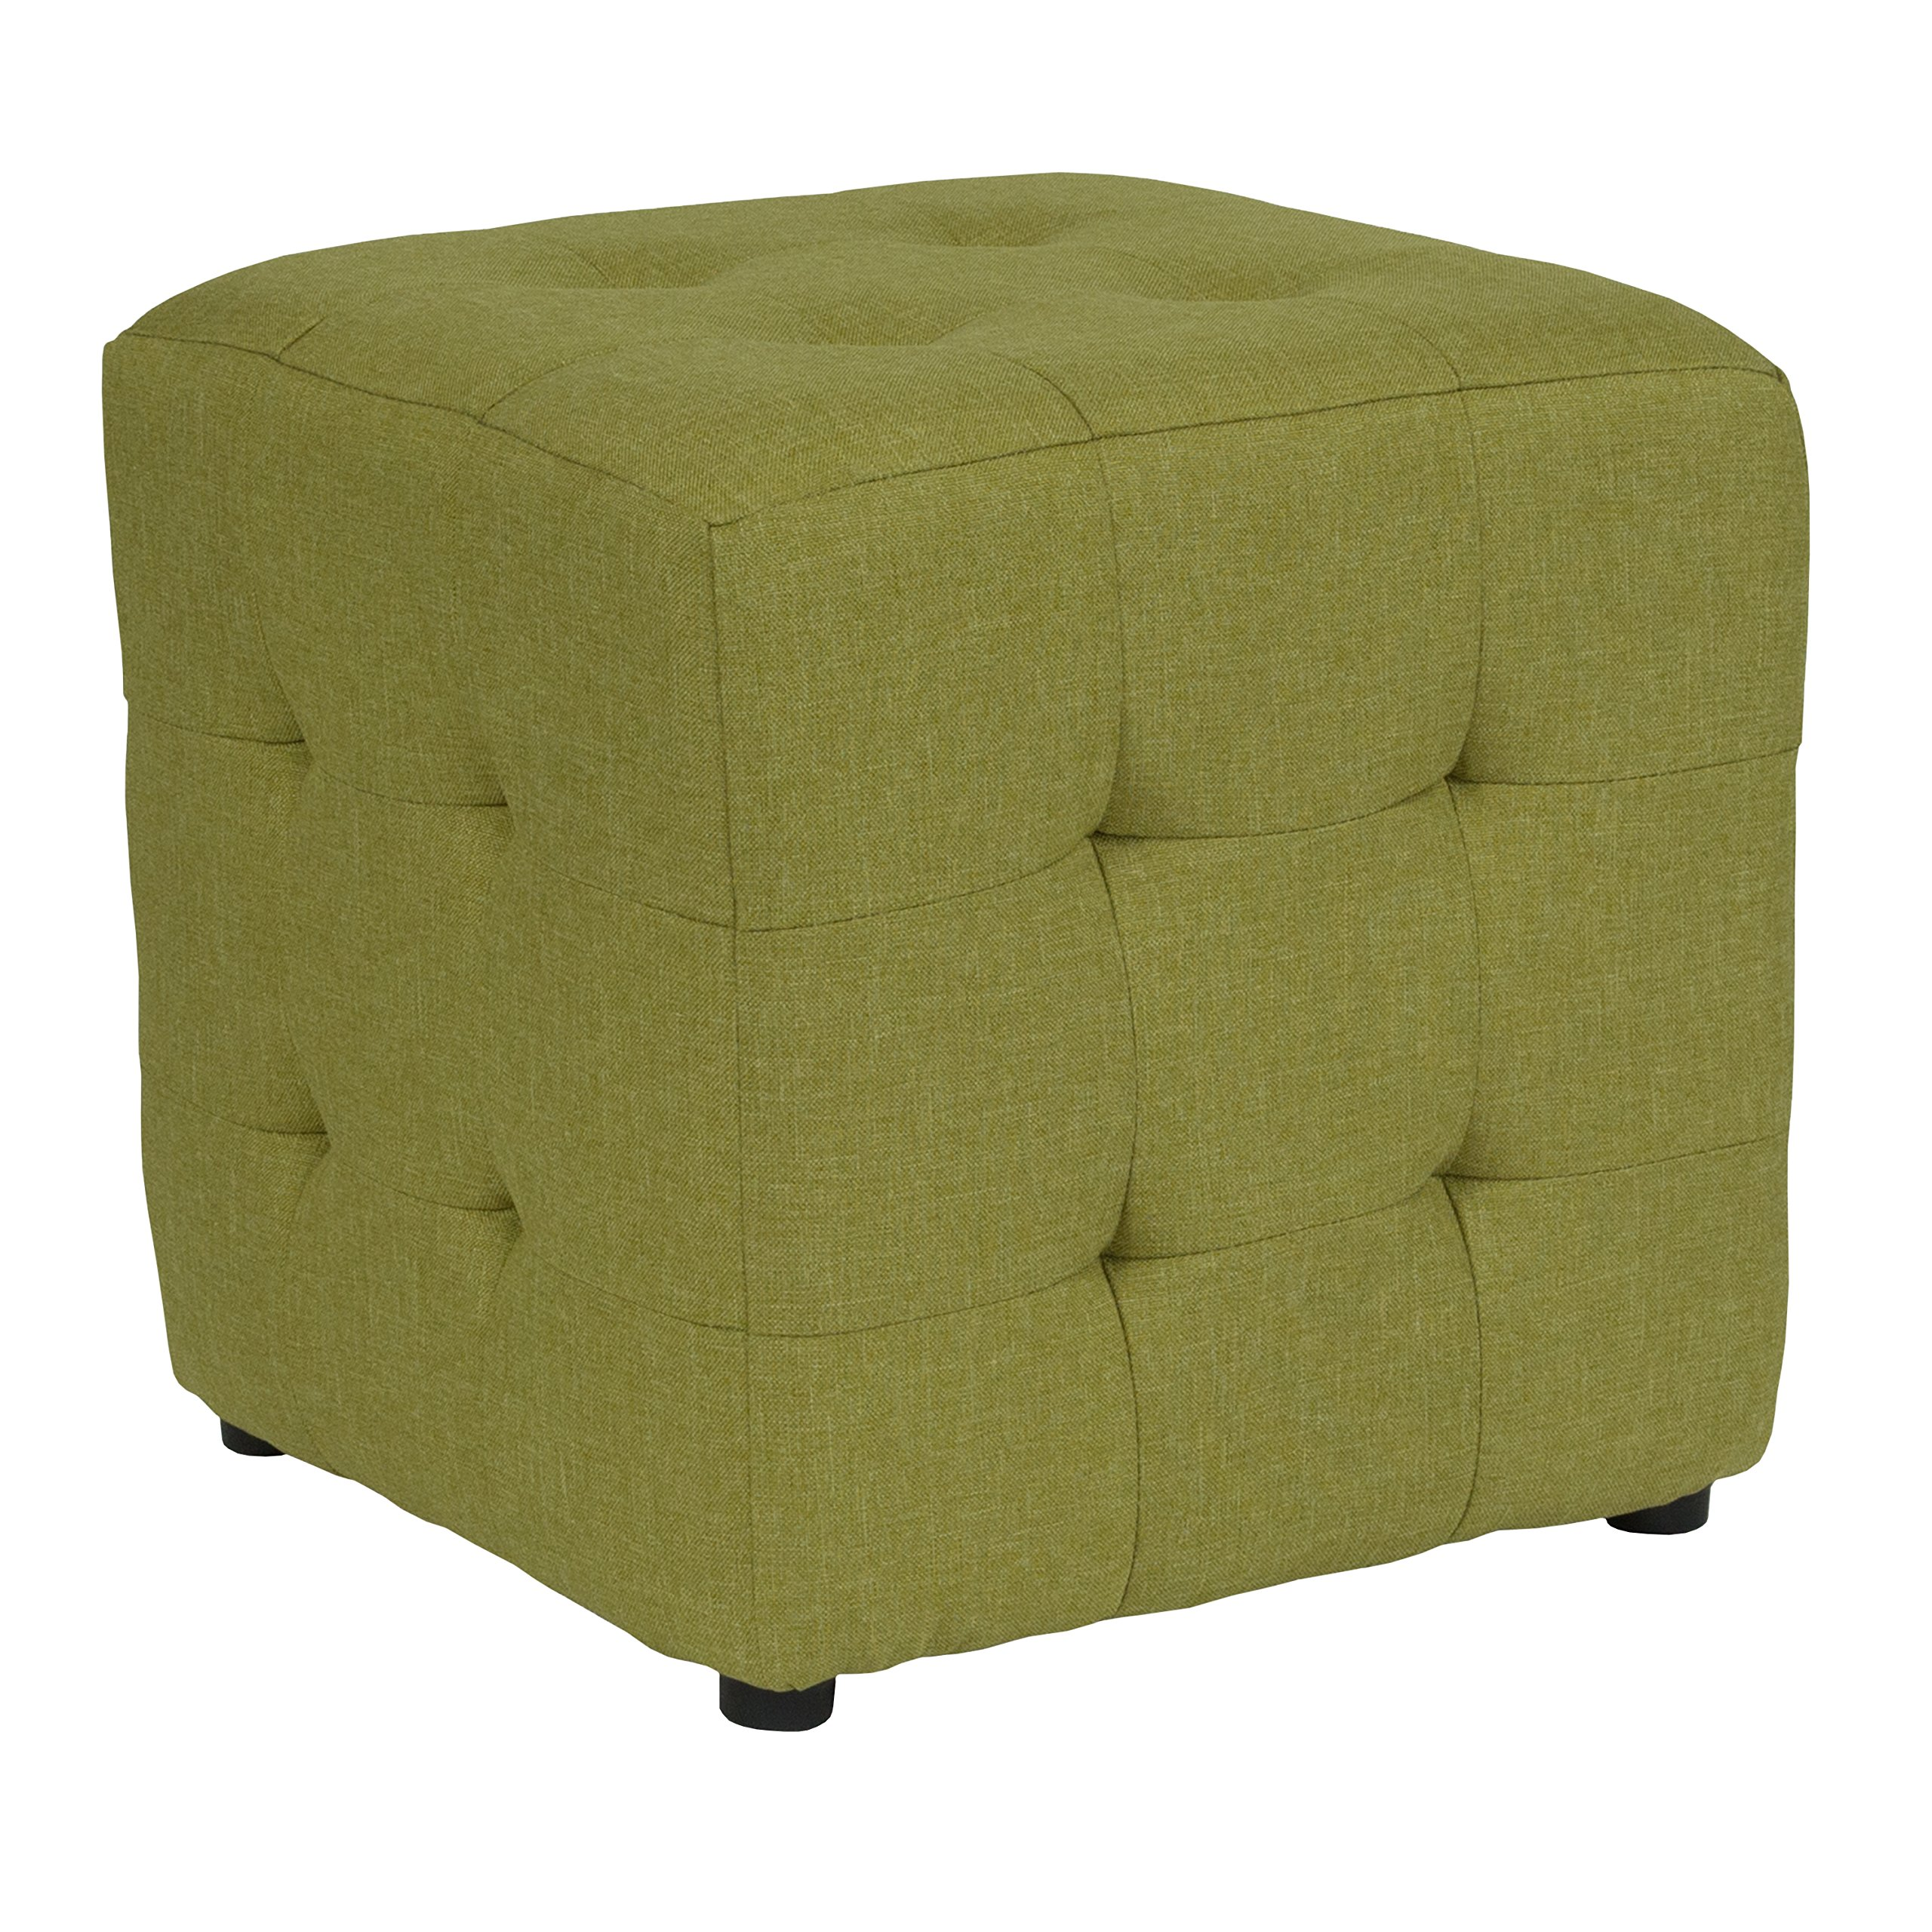 Flash Furniture Avendale Tufted Upholstered Ottoman Pouf in Green Fabric